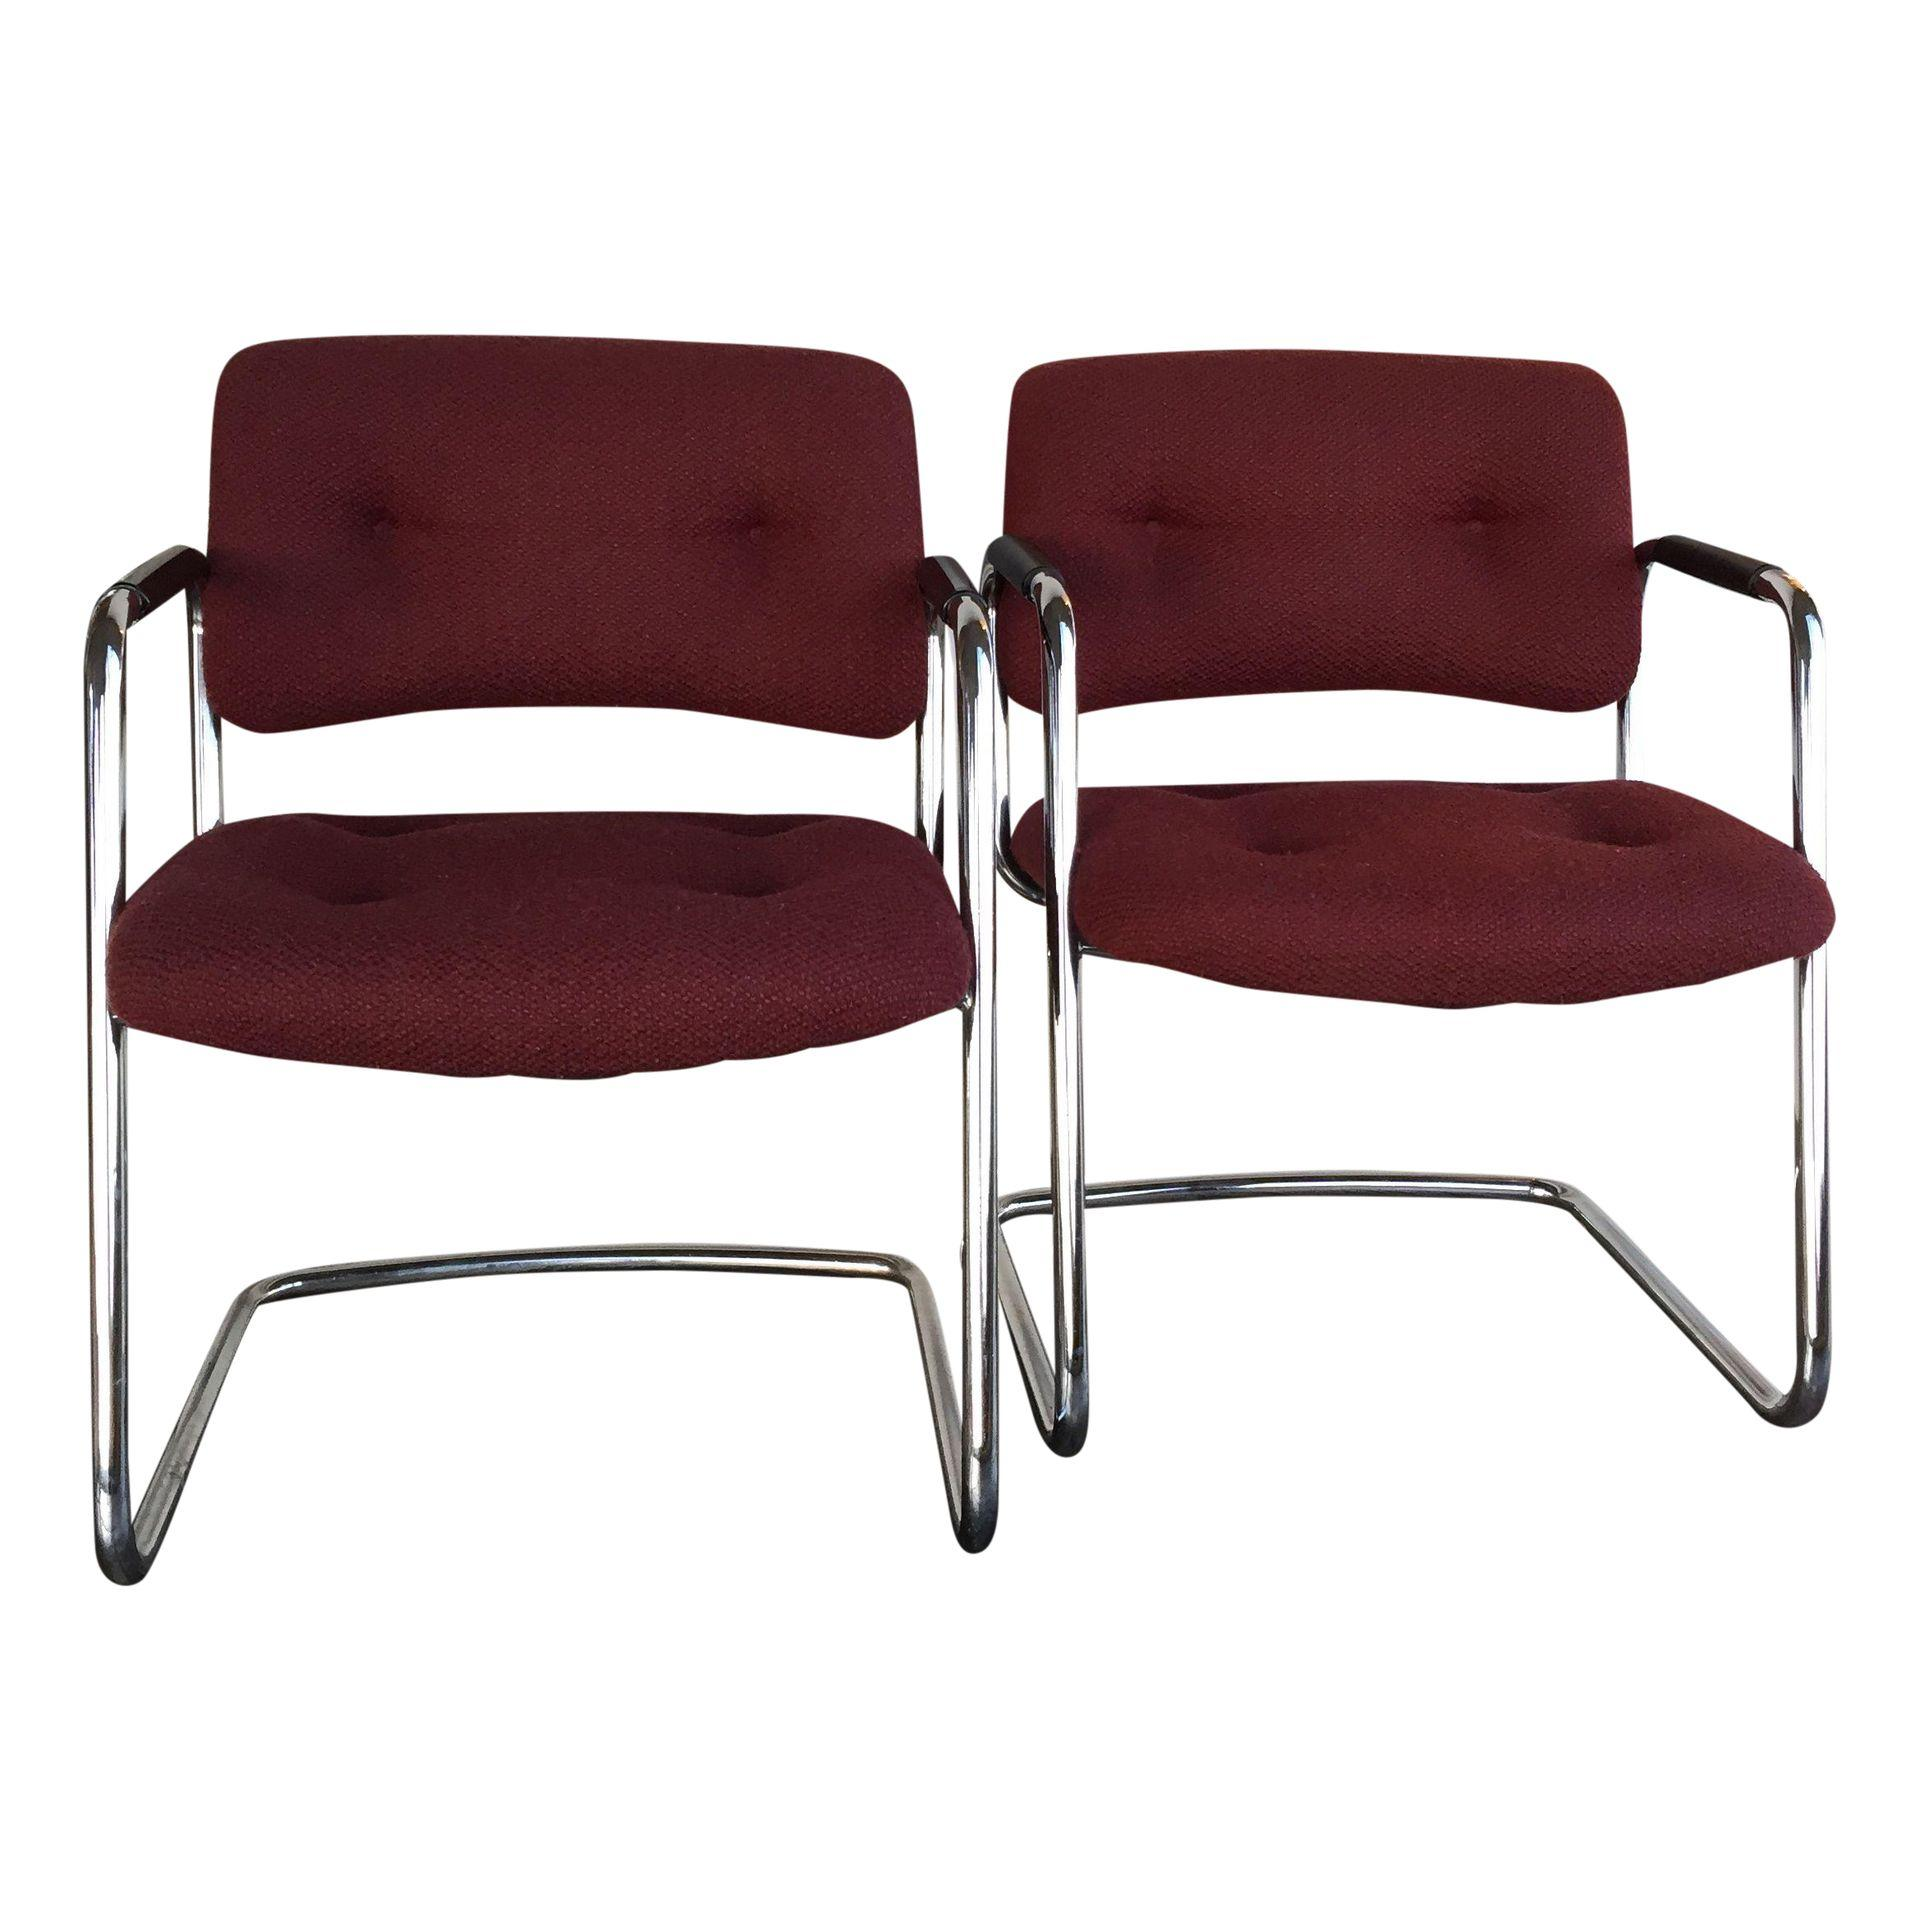 Charmant Steelcase Vintage Chrome Chair